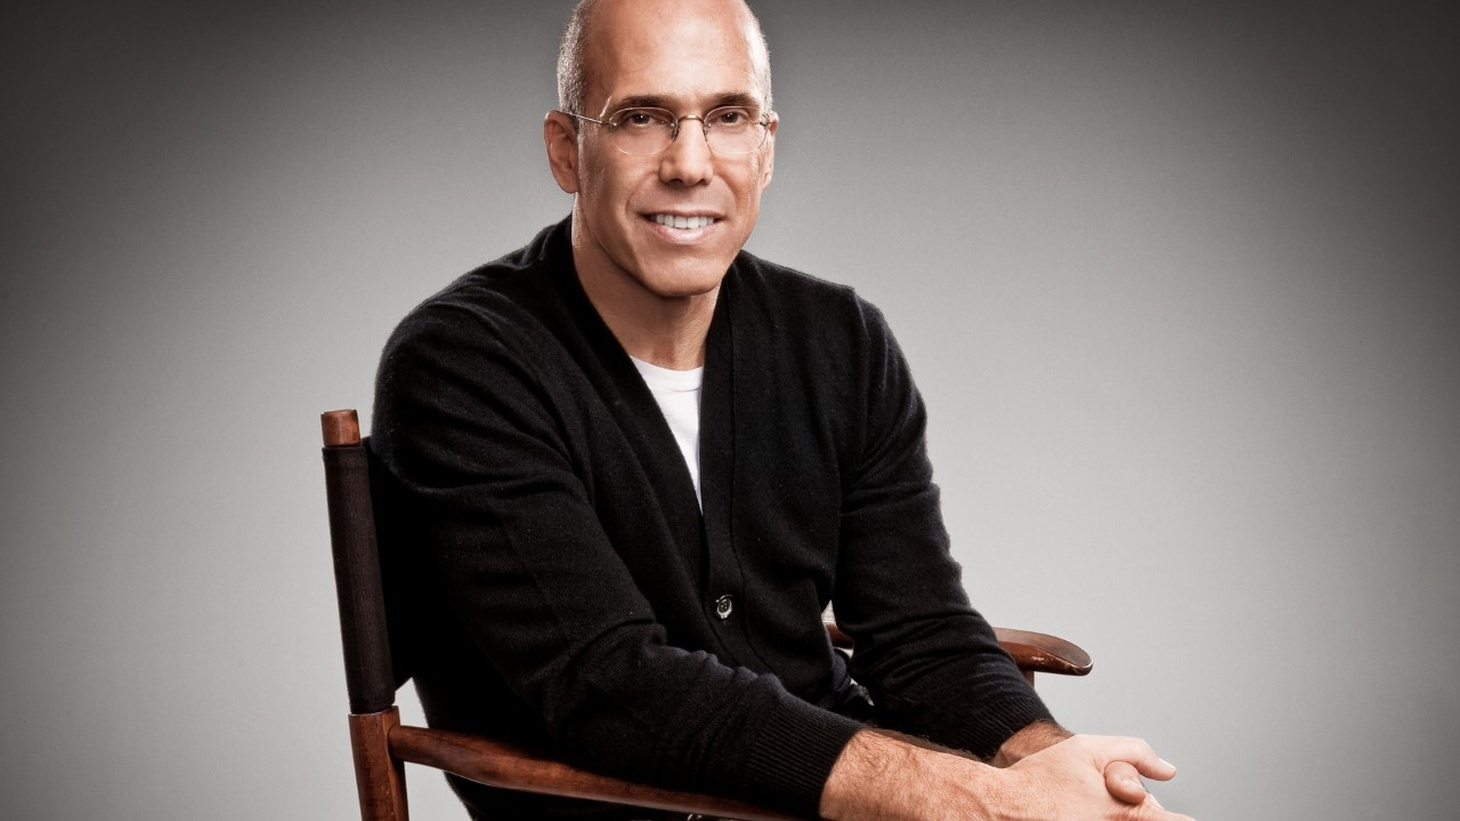 Jeffrey Katzenberg, pictured, and Meg Whitman launched Quibi with $1.75 billion in investments, but it soon ran into a host of issues.